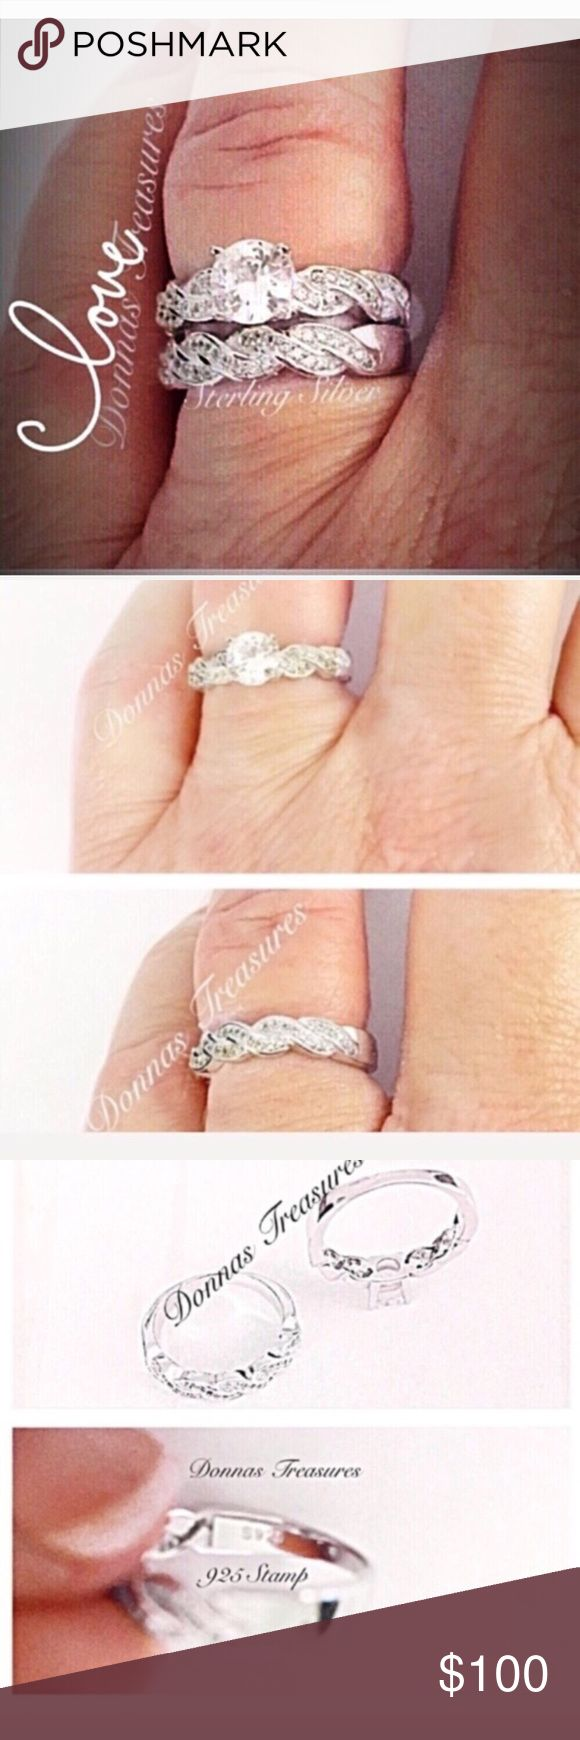 ❤️2 Carat AAA CZ & Sterling Silver Wedding Set This set is made of AAA CZ's in a Sterling Silver Setting. The main stone on the engagement ring is approximately .50 Carat. The bands have a braided effect & are studded with an approx total of 1.50 Carat AAA CZ. ( .75 carats on each band.) Jewelry Rings